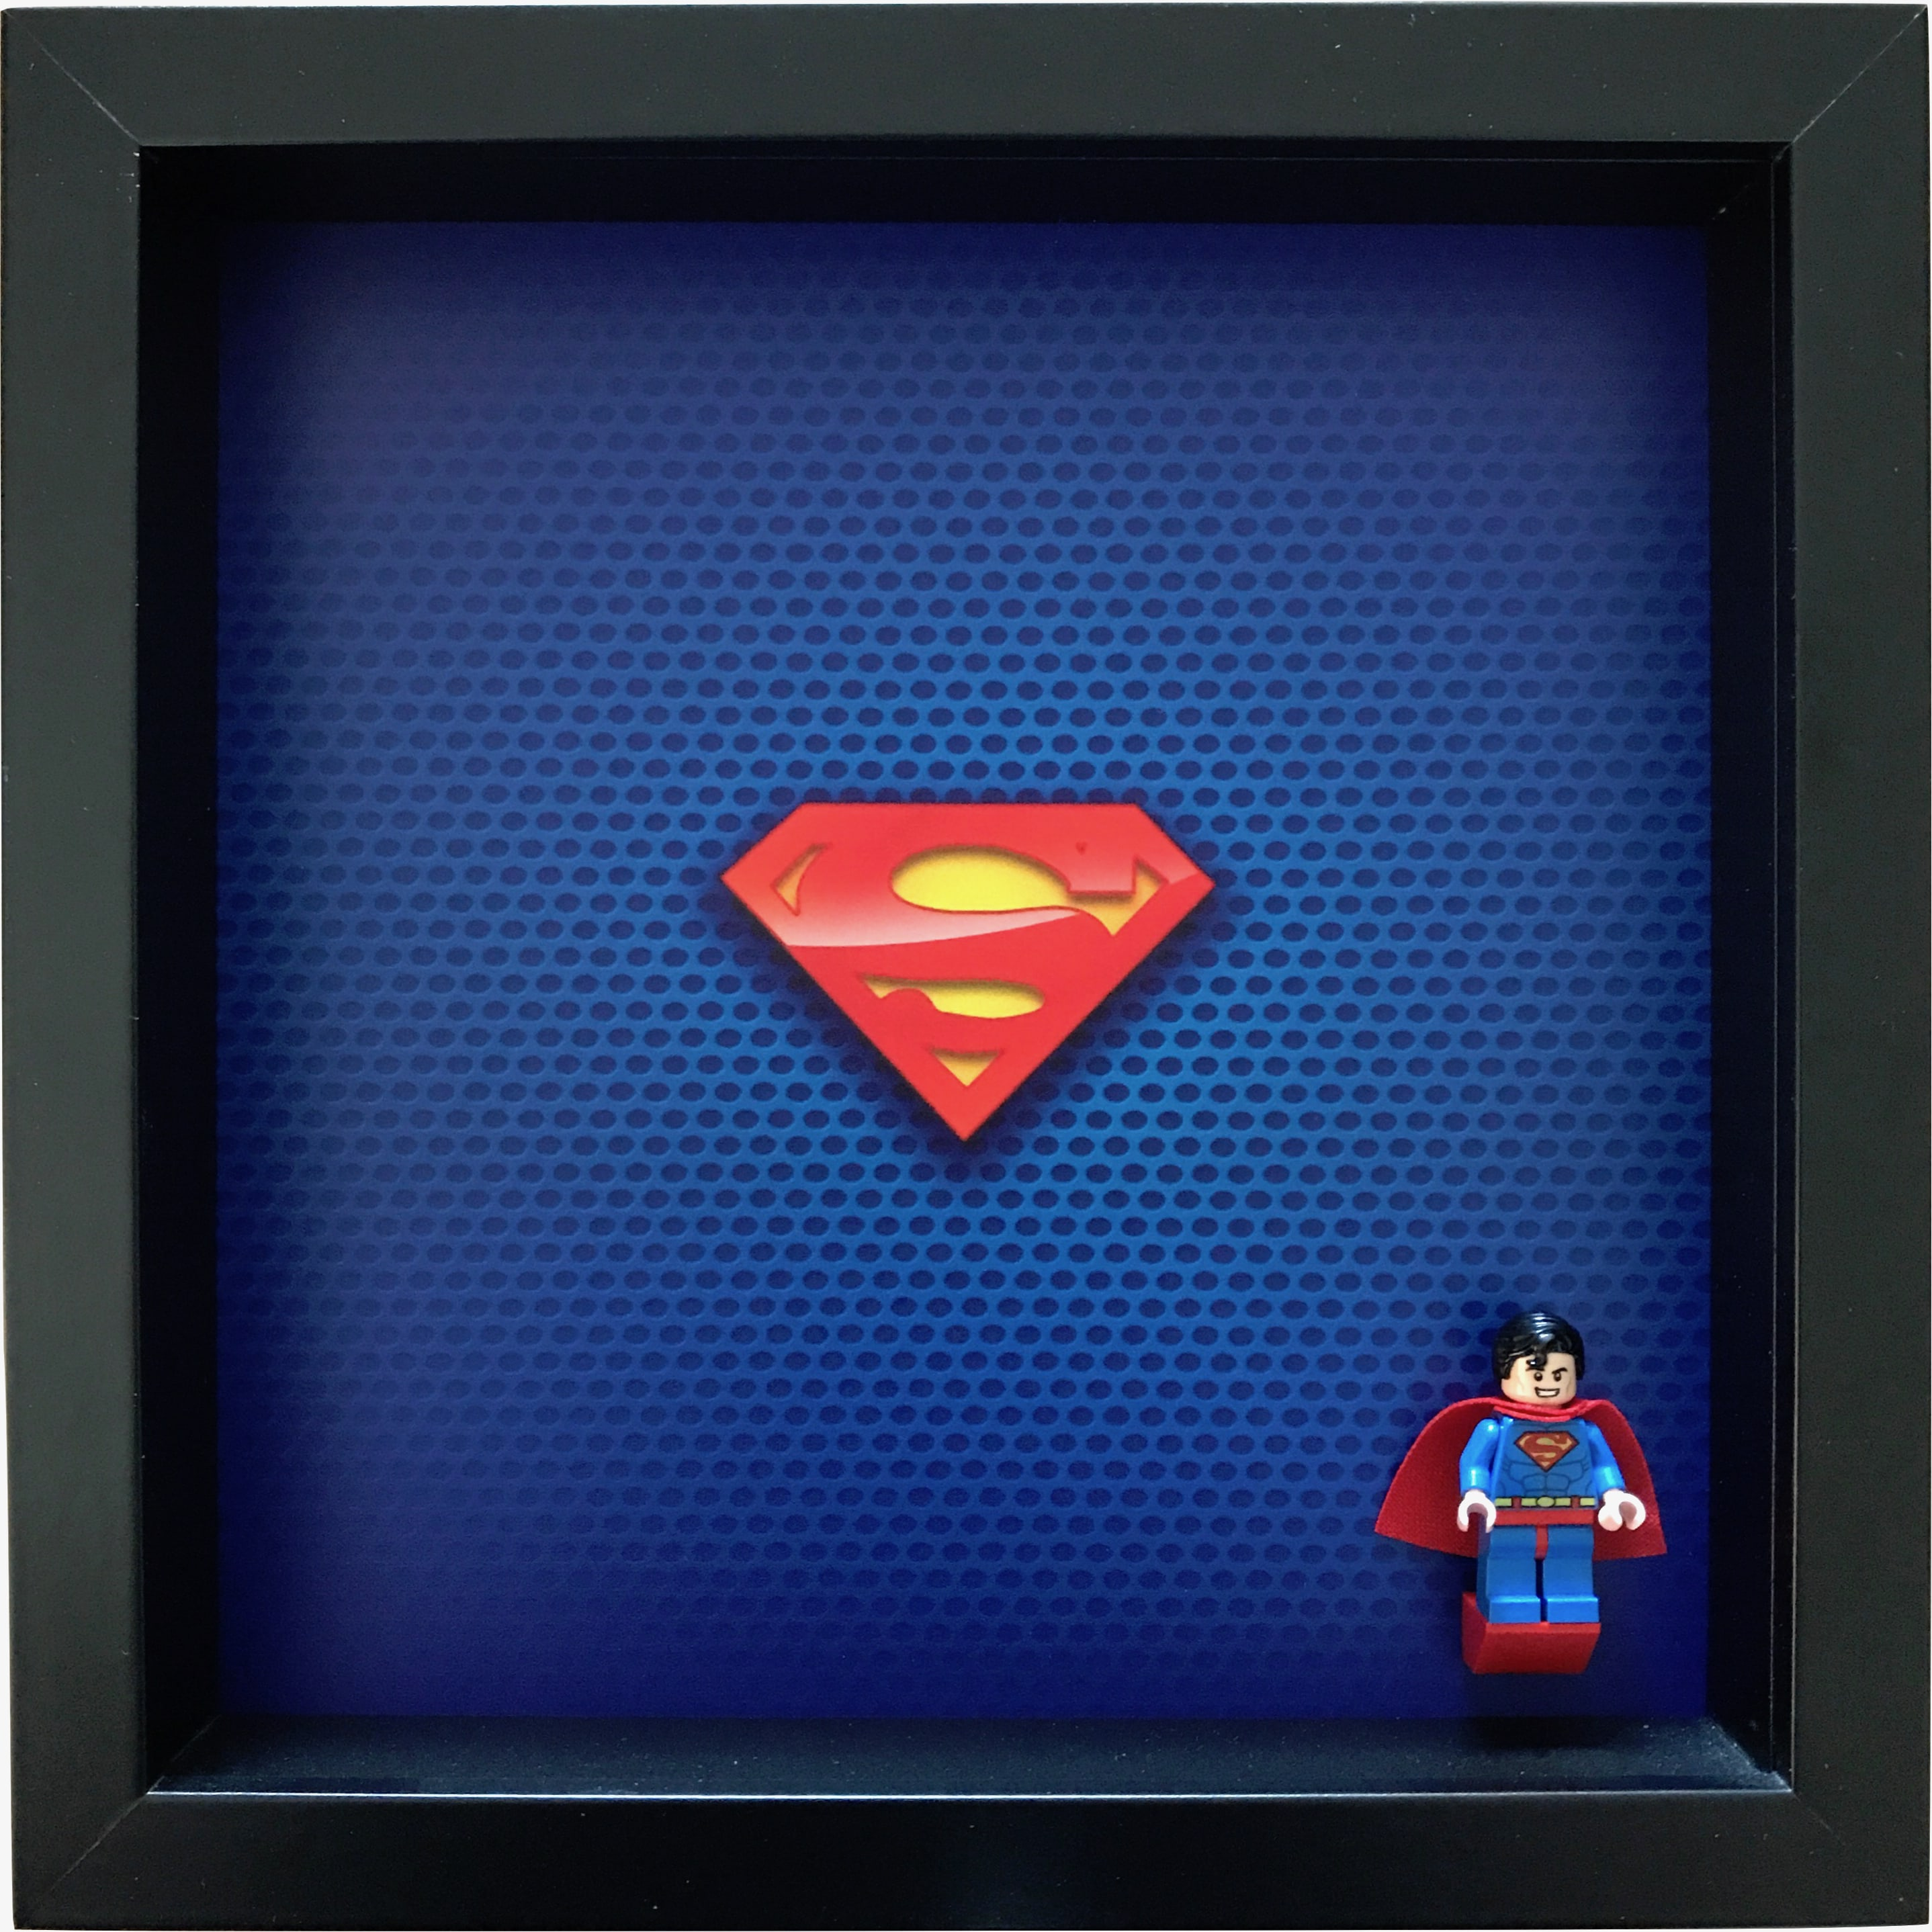 Superman LEGO Minifigure Display Frame with Minifigure